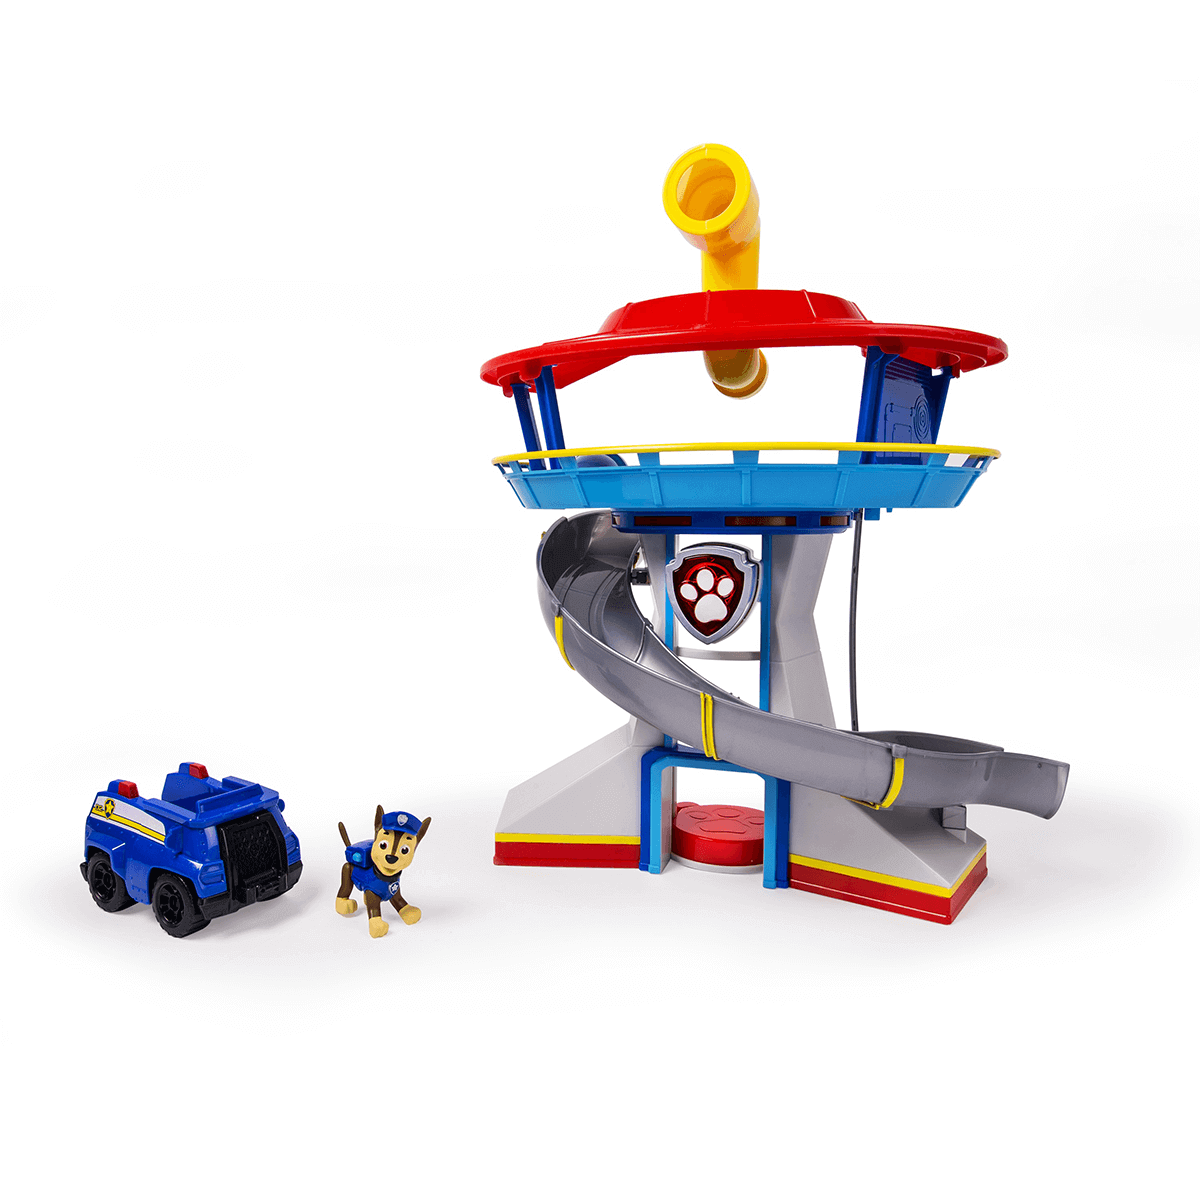 Paw Patrol Lookout Playset The Entertainer (With images